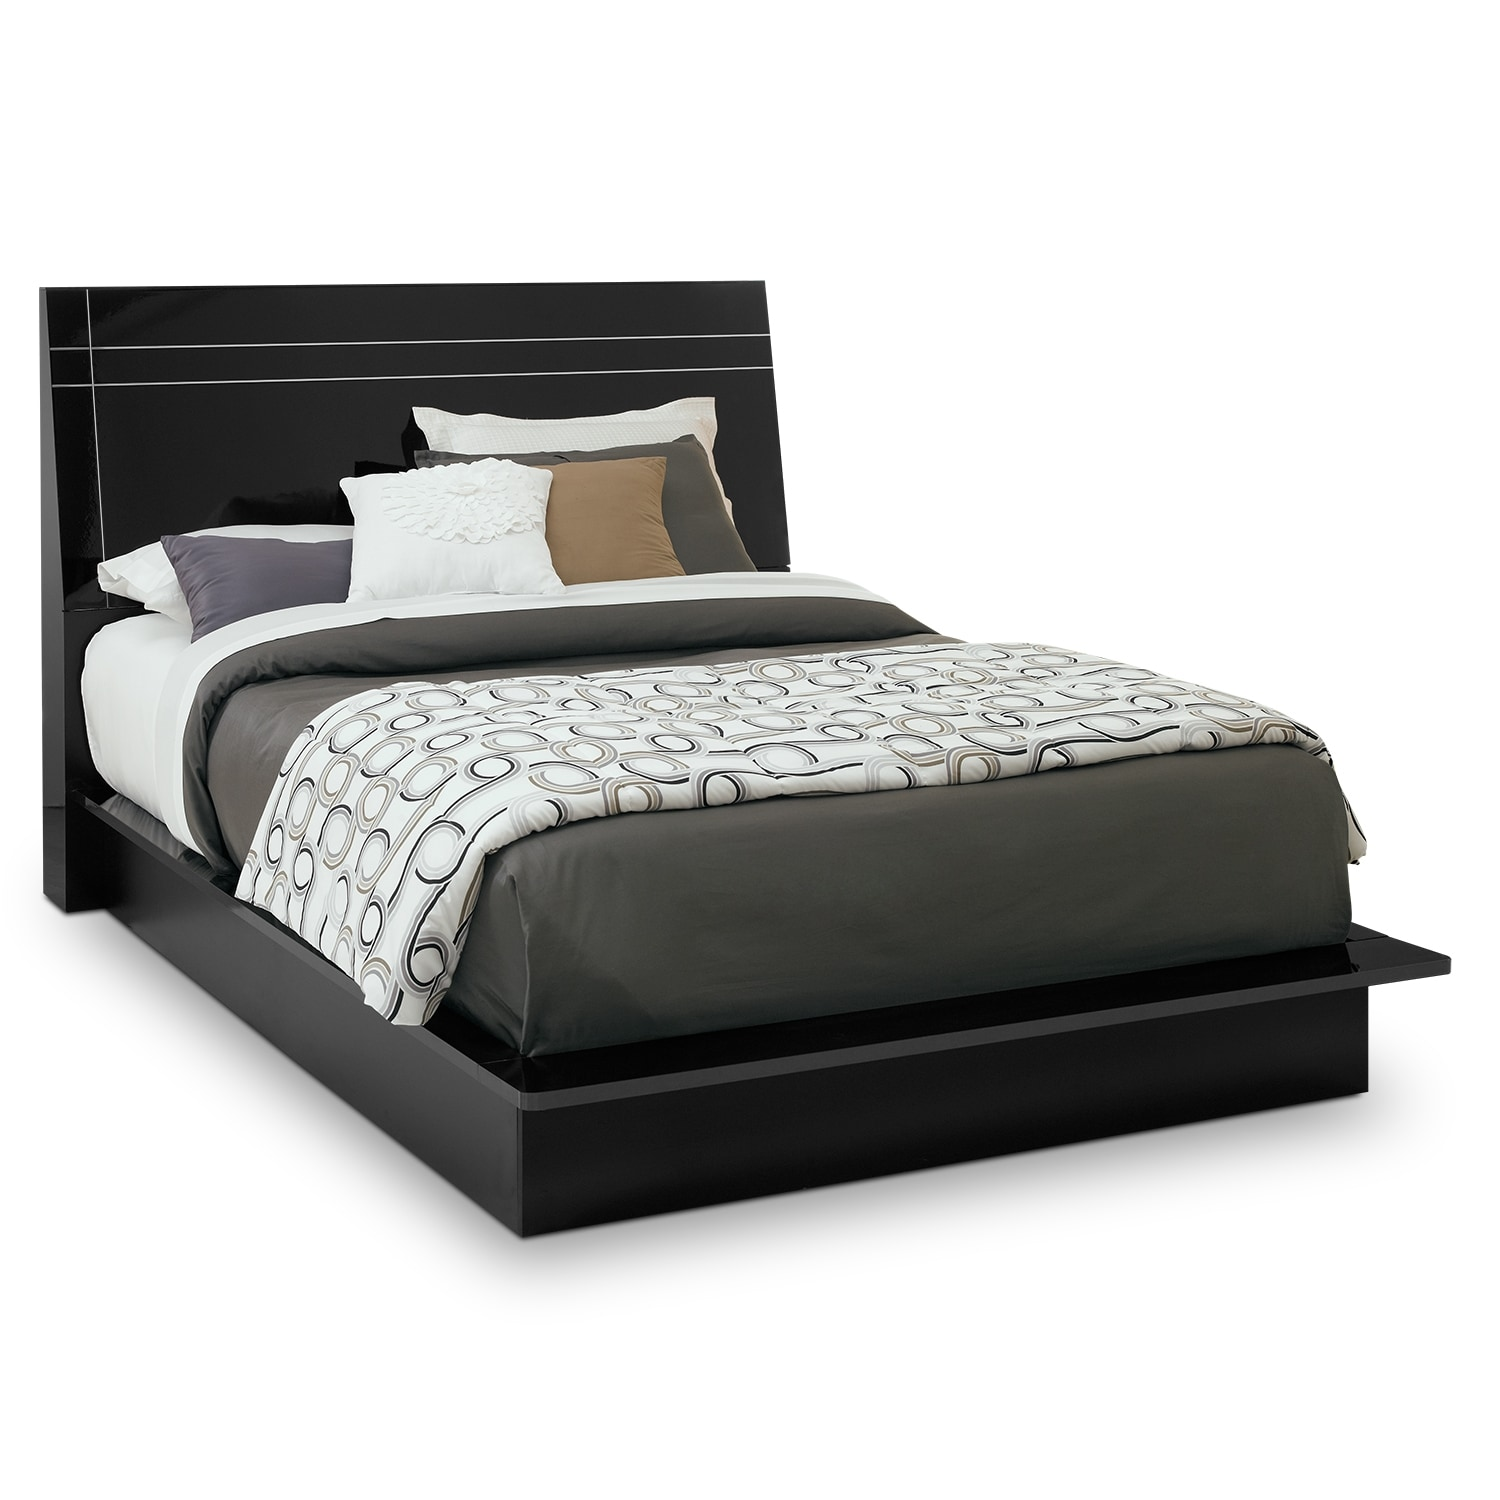 Dimora queen panel bed black american signature furniture - Black queen bedroom furniture set ...